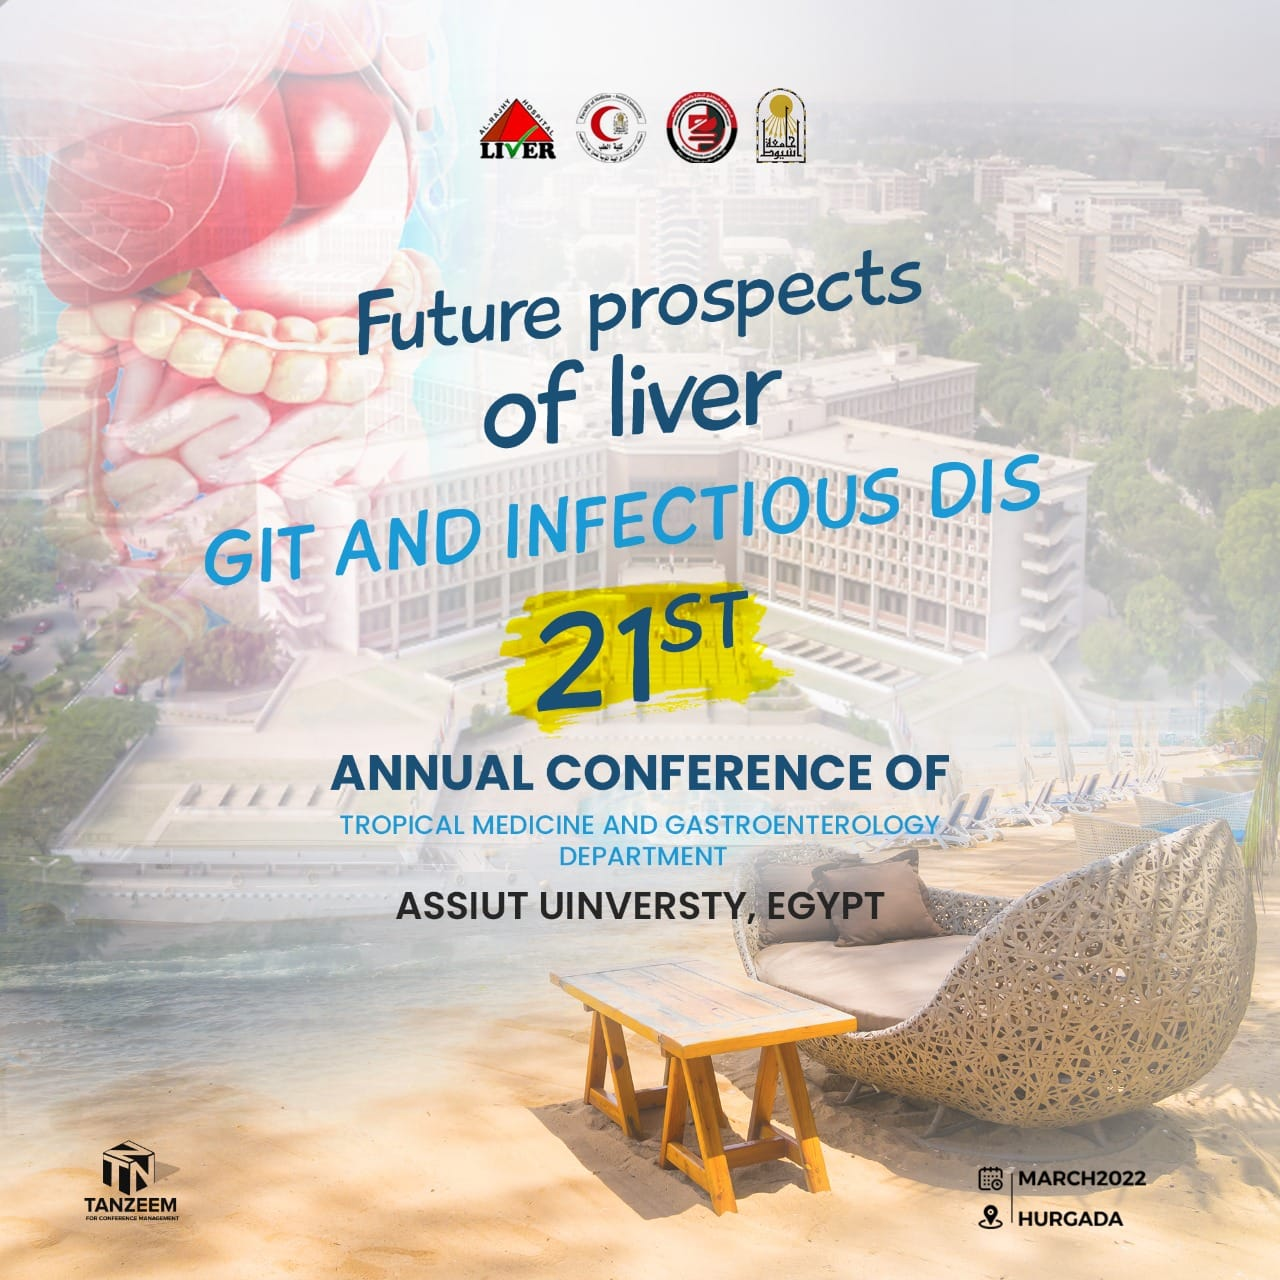 21st Annual Conference of Tropical Medicine and Gastroenterology Department, Assiut University